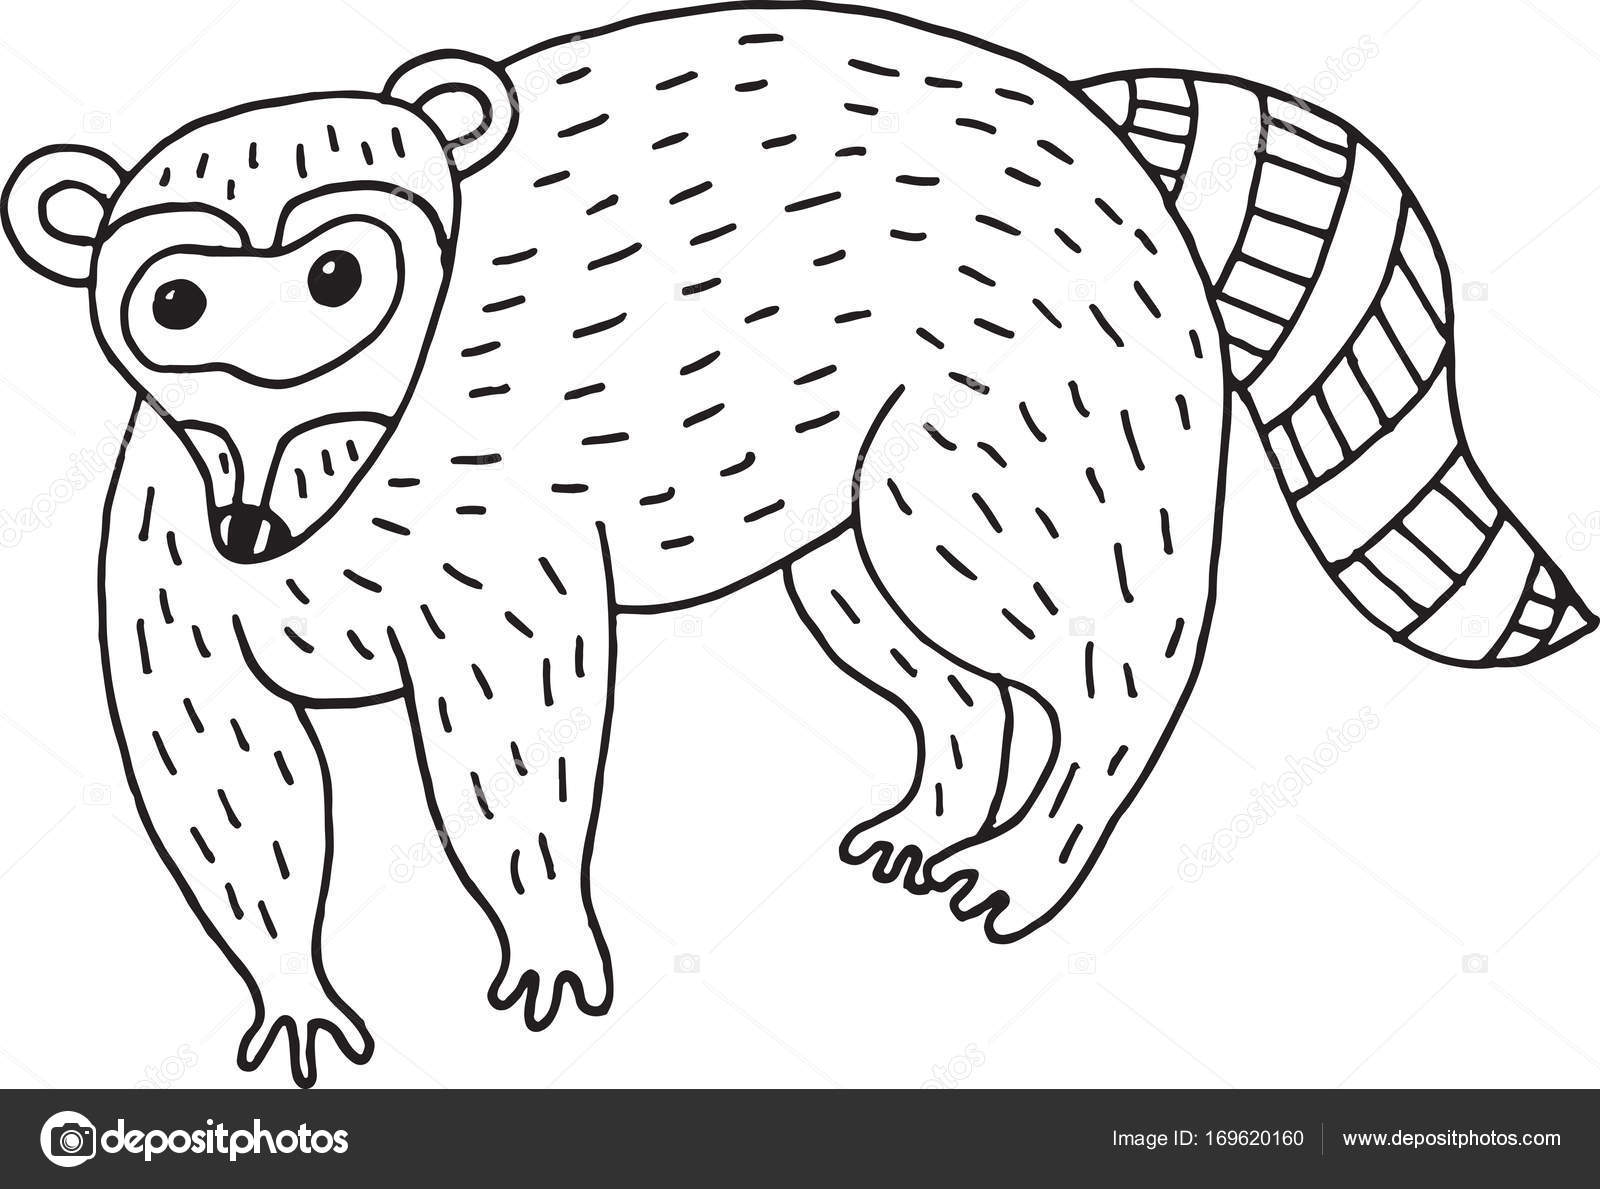 Ilustración simple de bosque animal mapache doodle dibujos animados ...